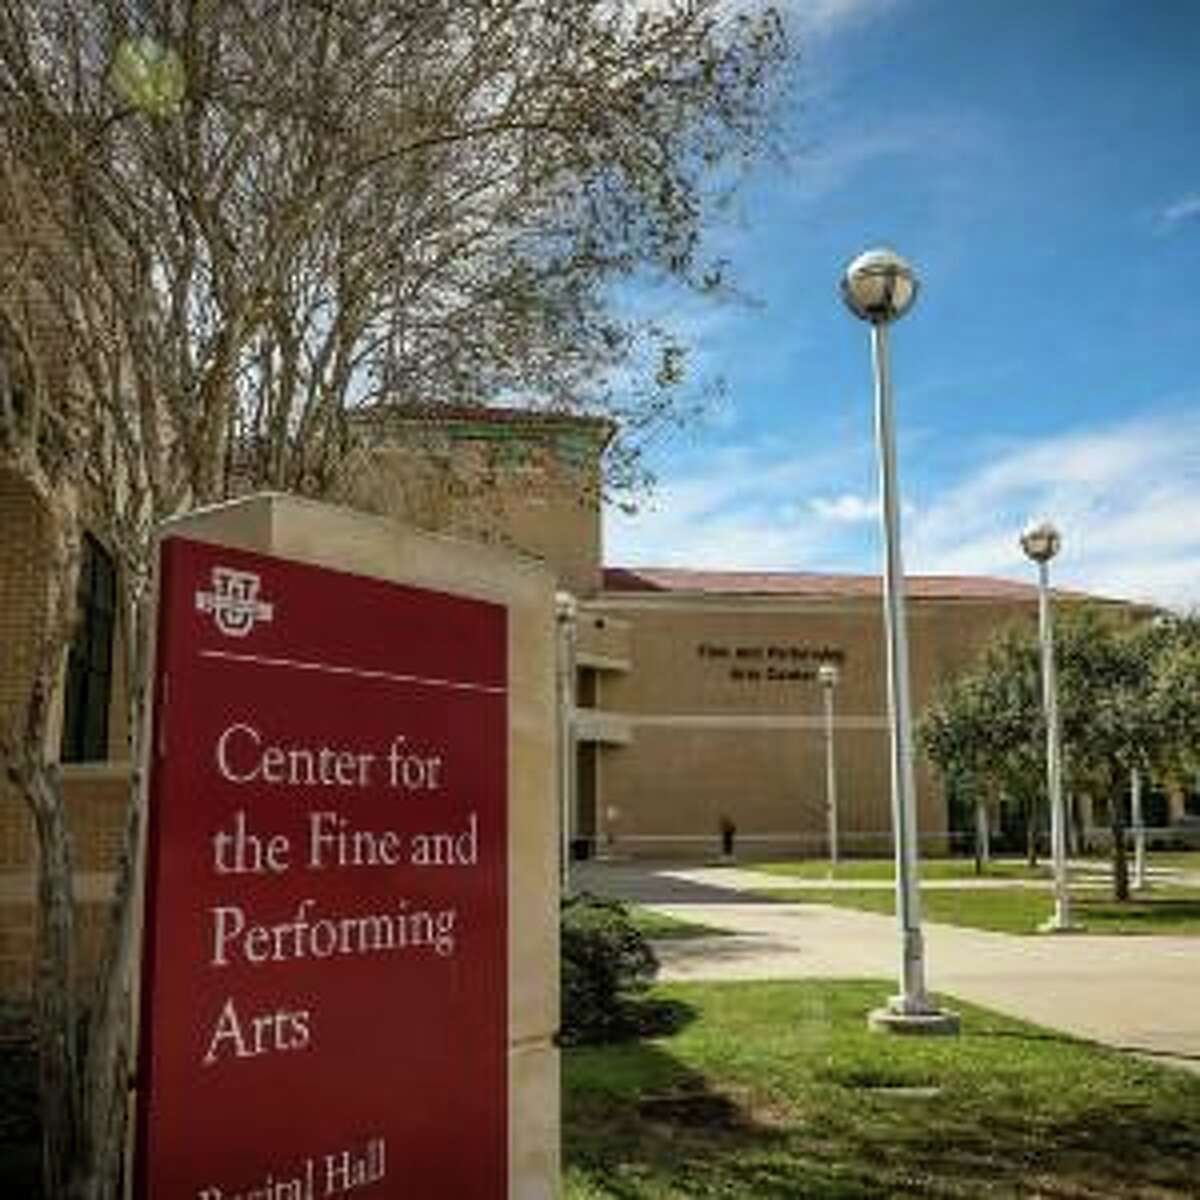 TAMIU opened a faculty art exhibit Thursday and will have a concert held Friday.